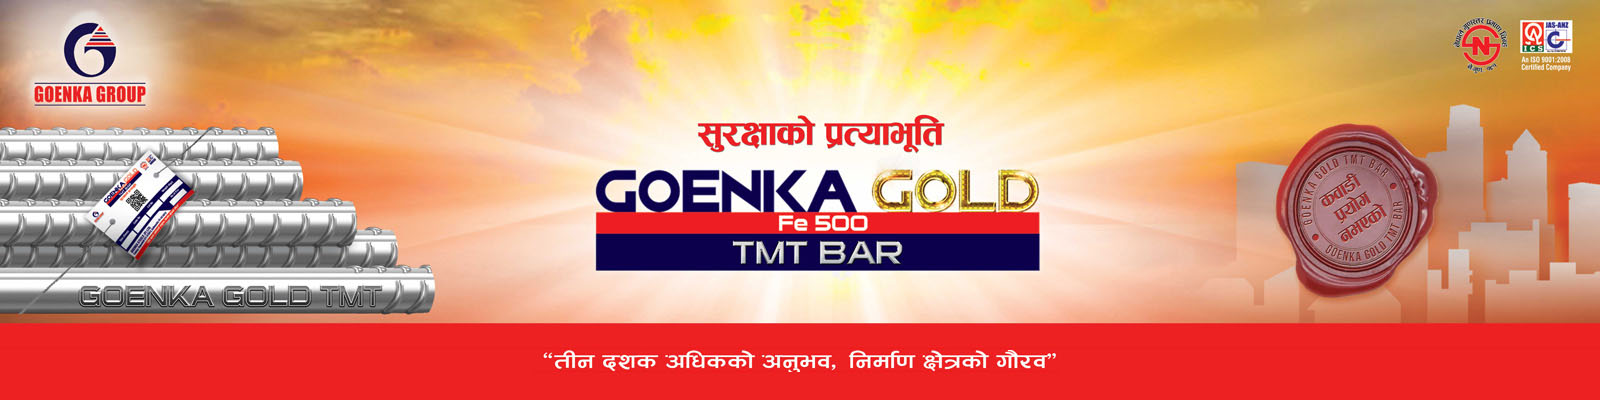 Goenka Gold TMT Bar